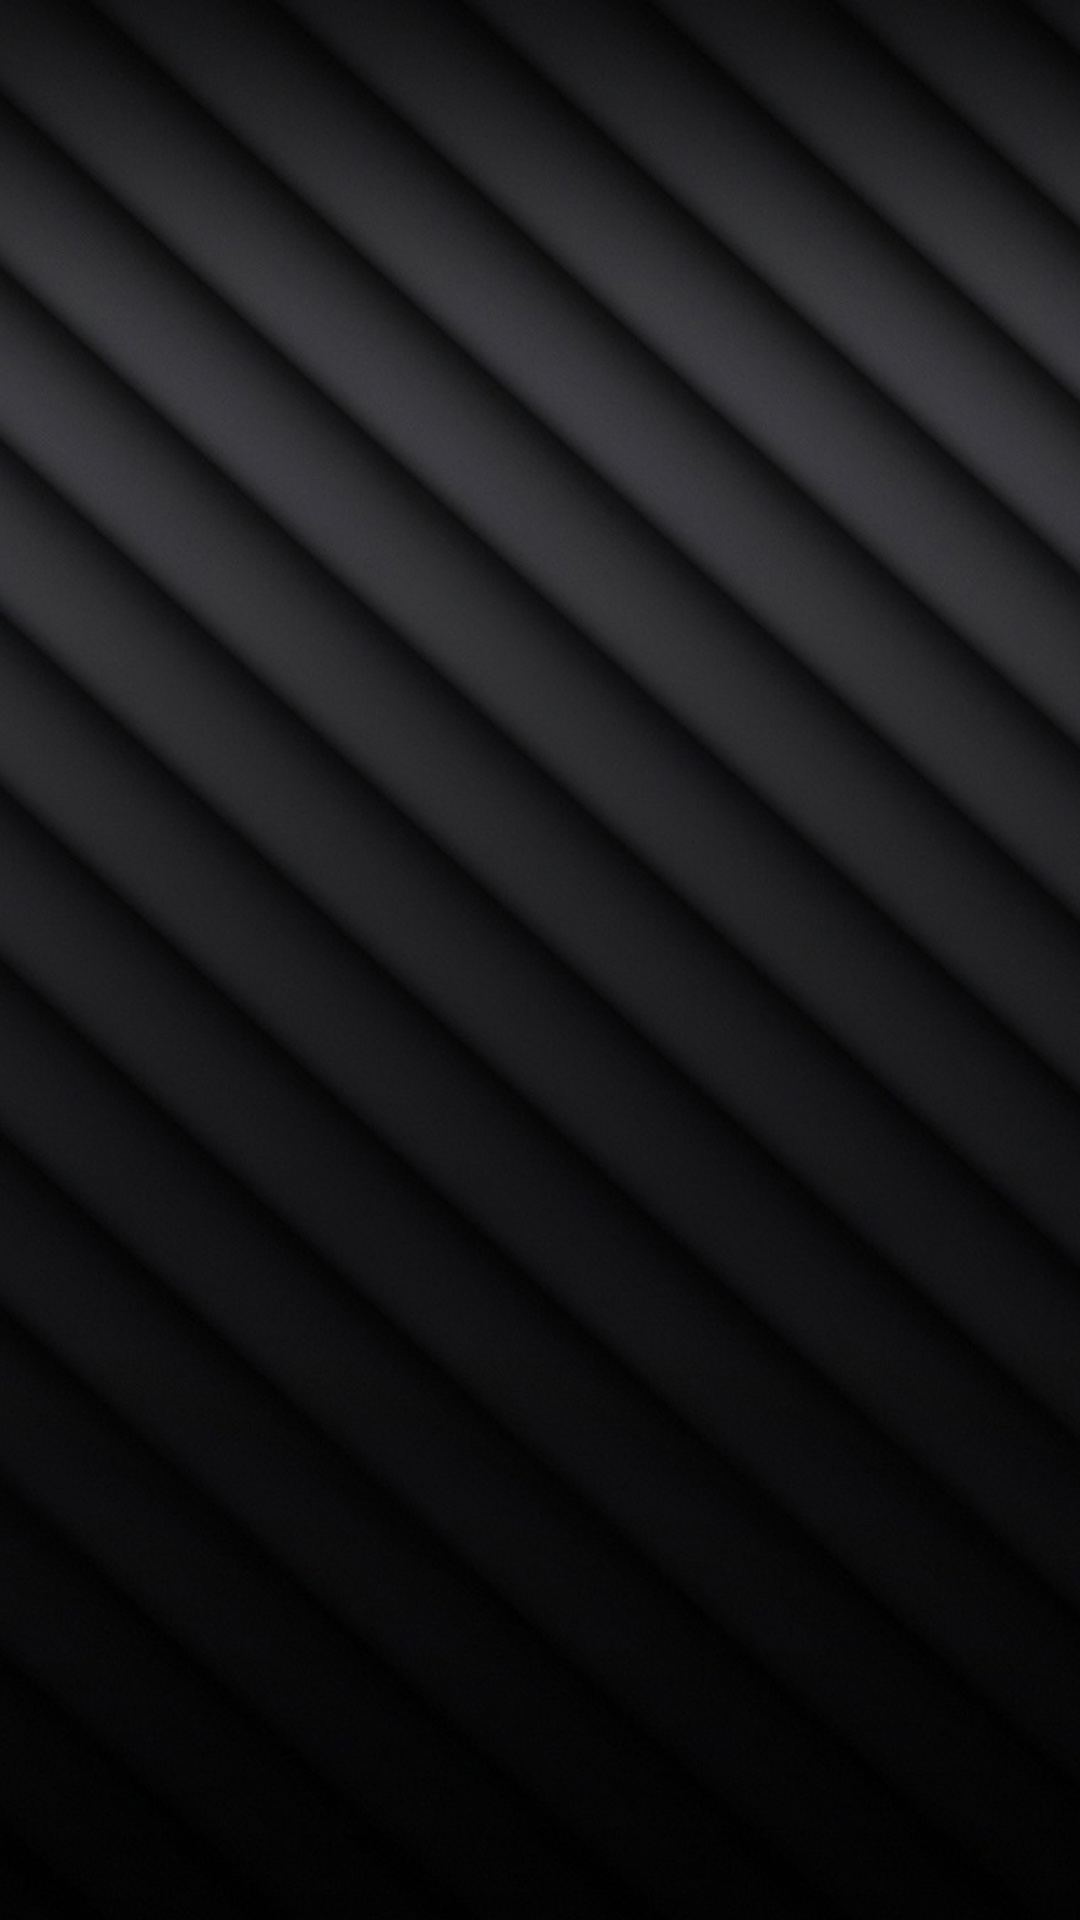 Abstract Black Stripes